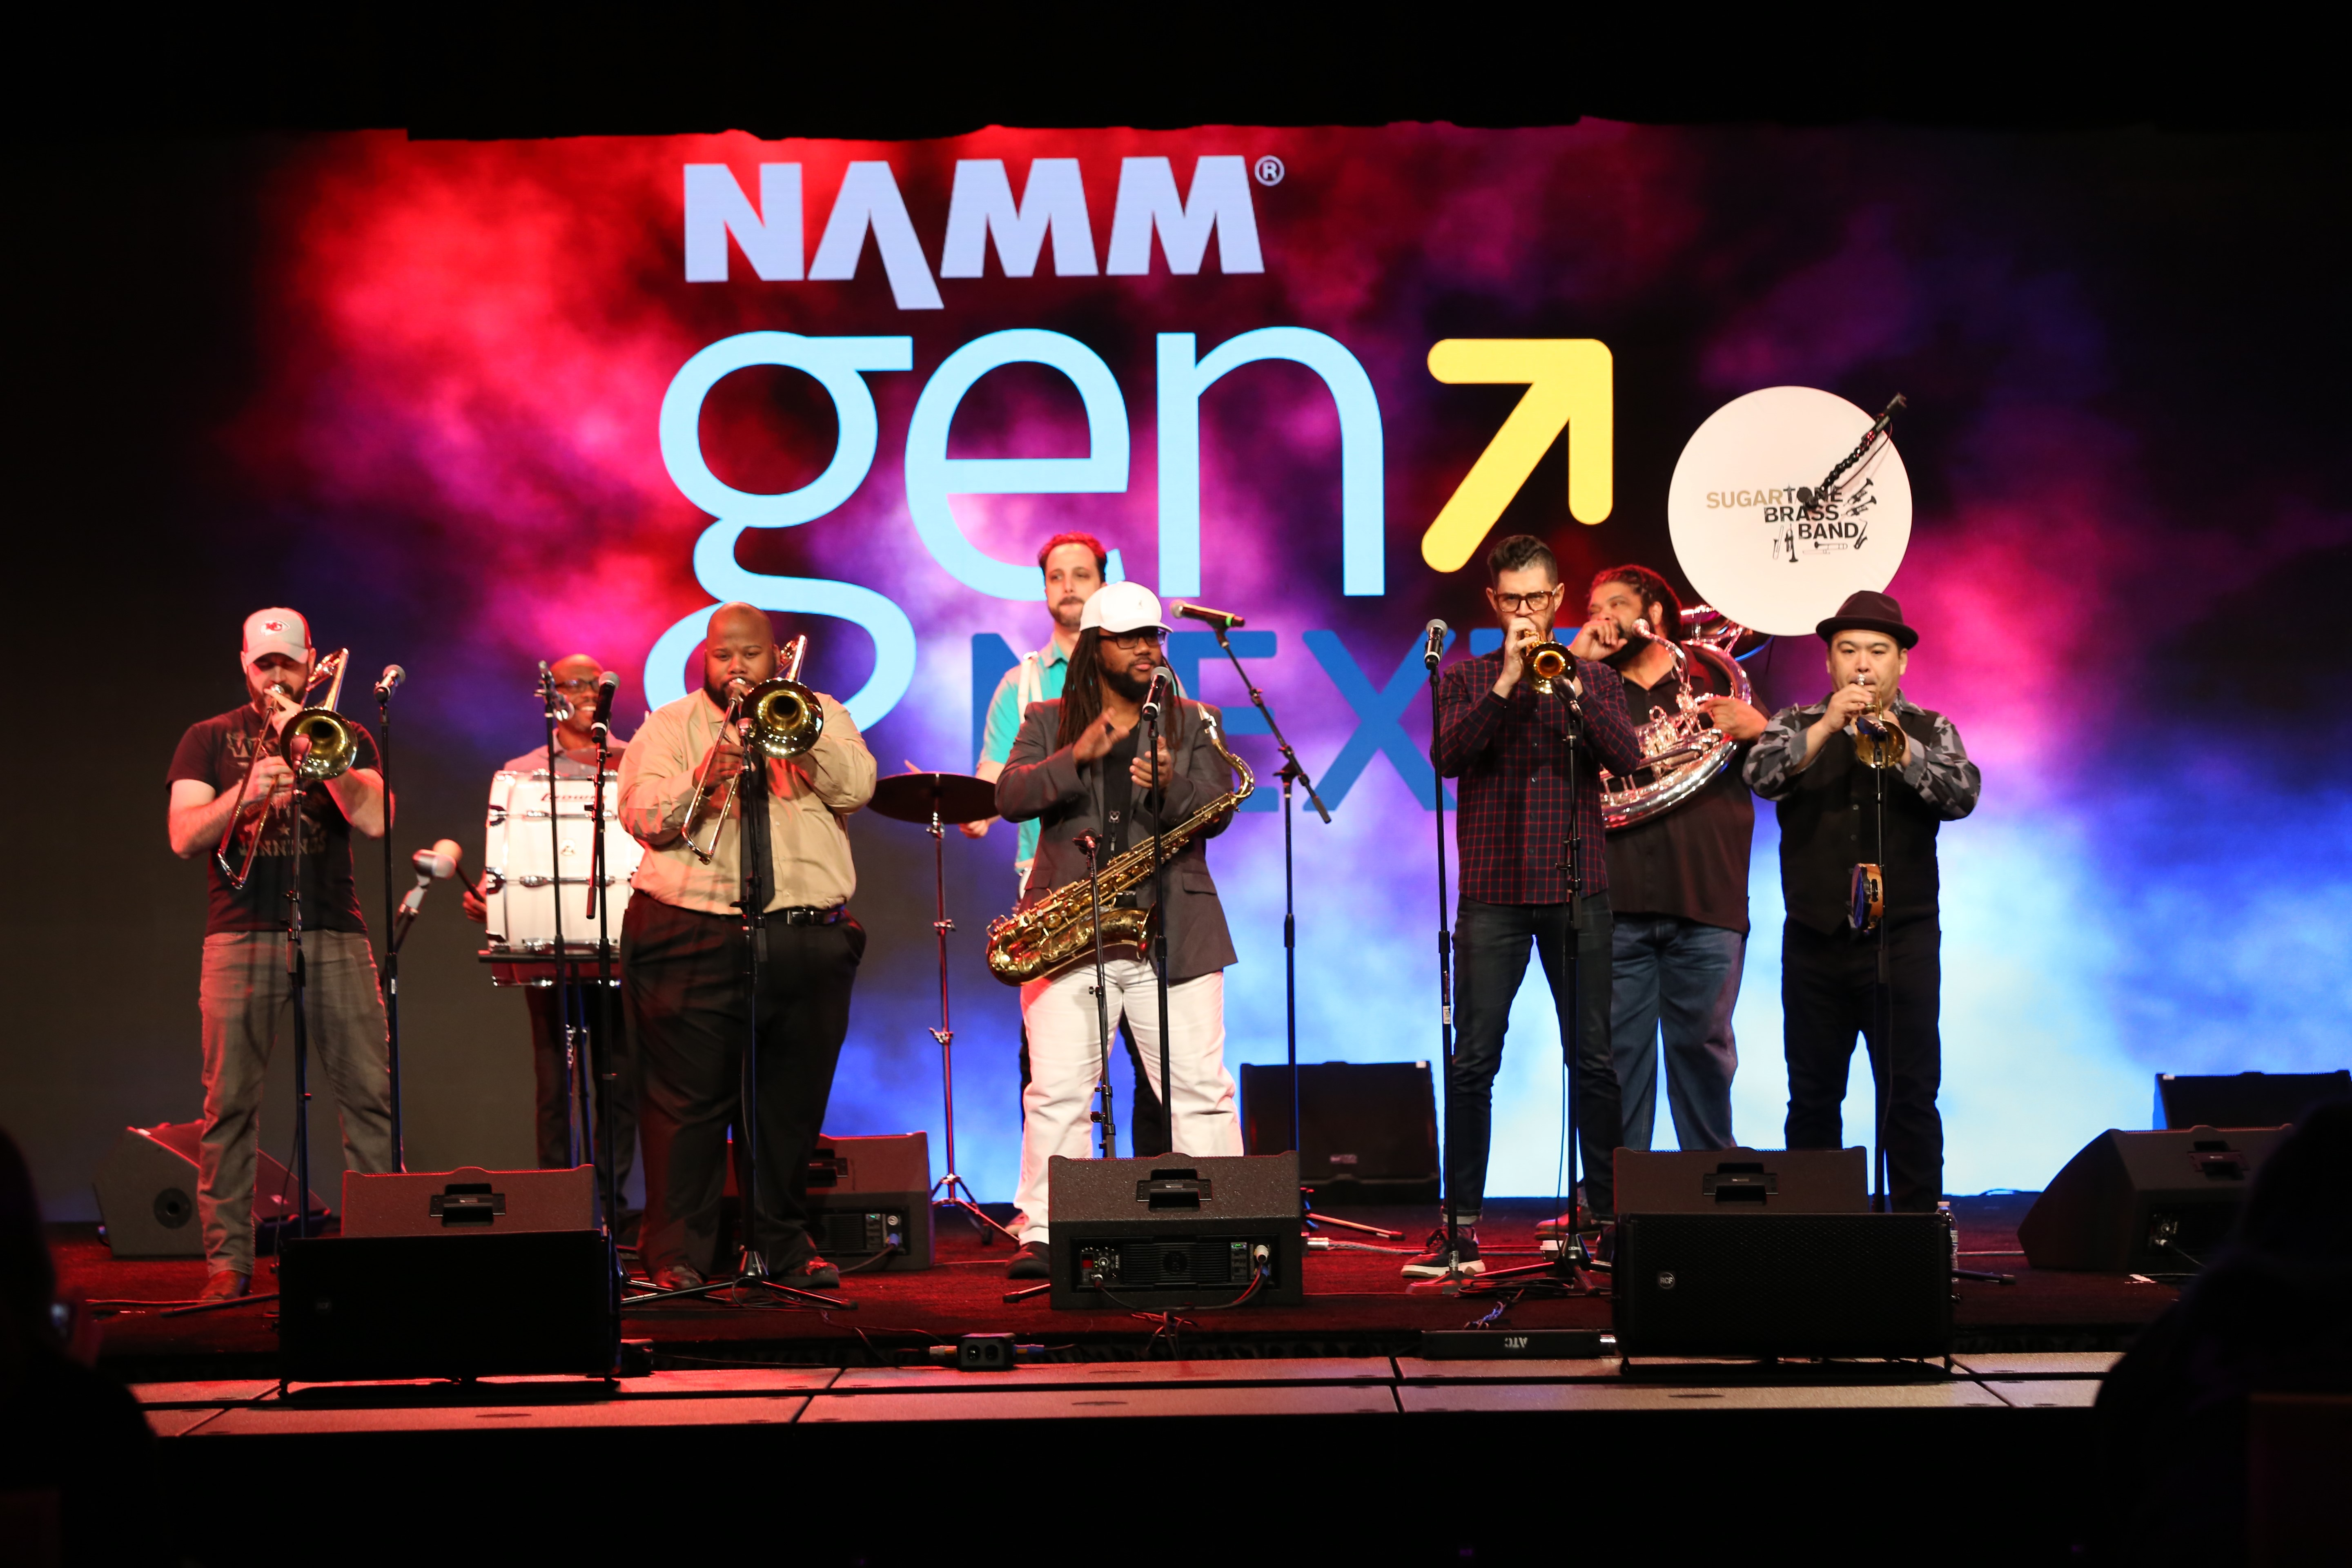 The NAMM Show